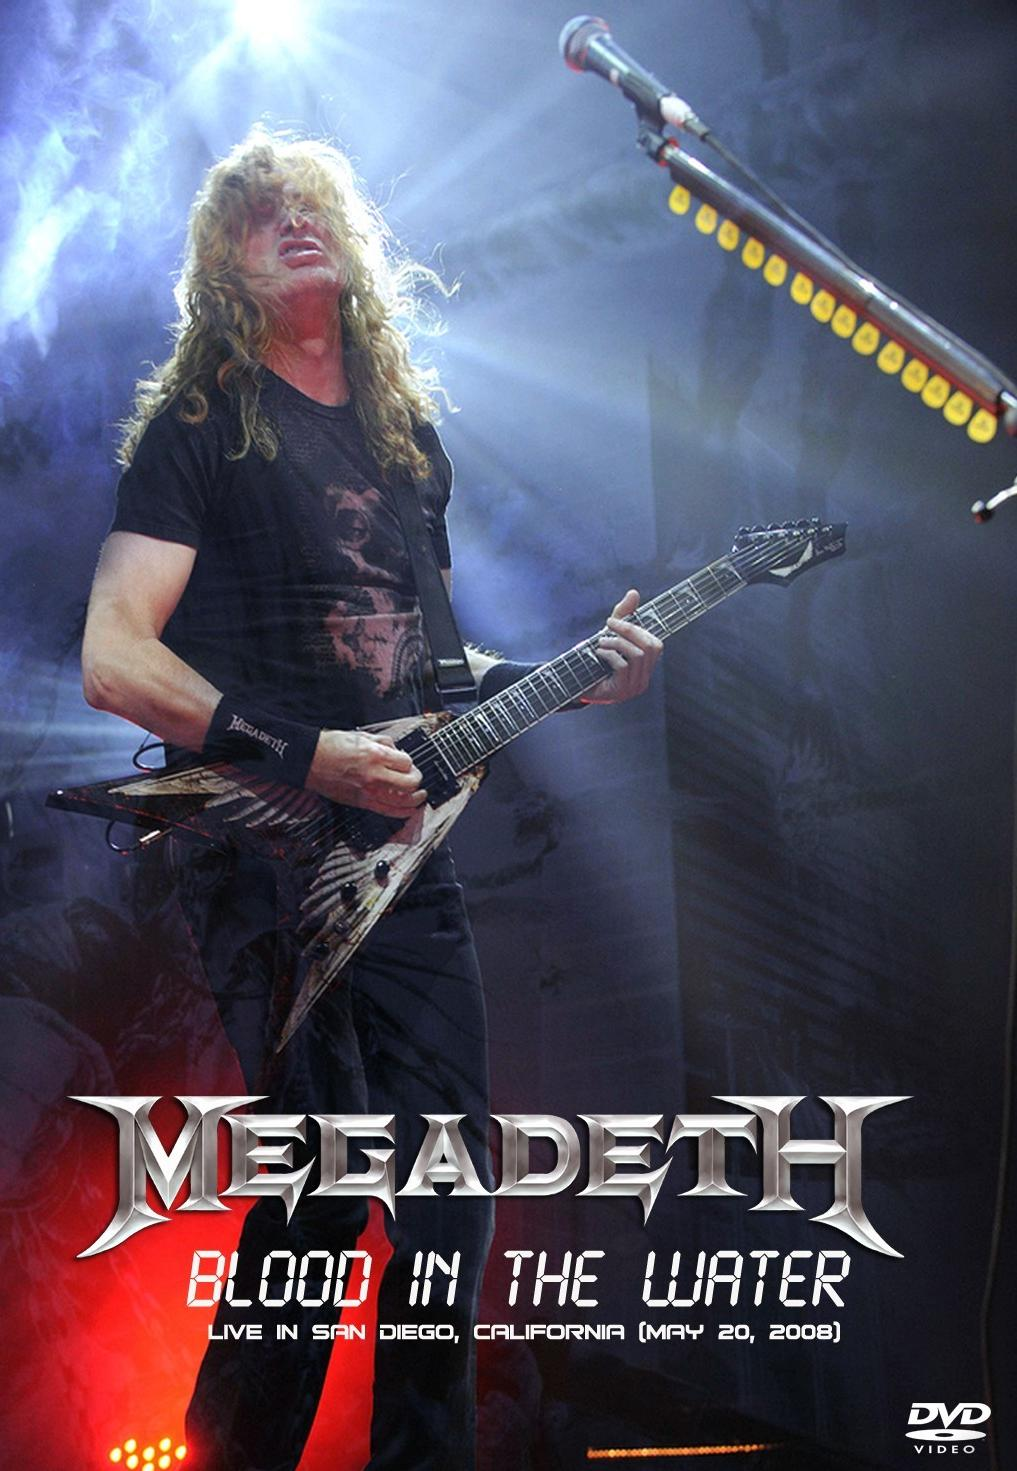 Megadeth – Blood in the Water Live in San Diego [Full] [Concierto Completo] [1 Link] [MEGA]